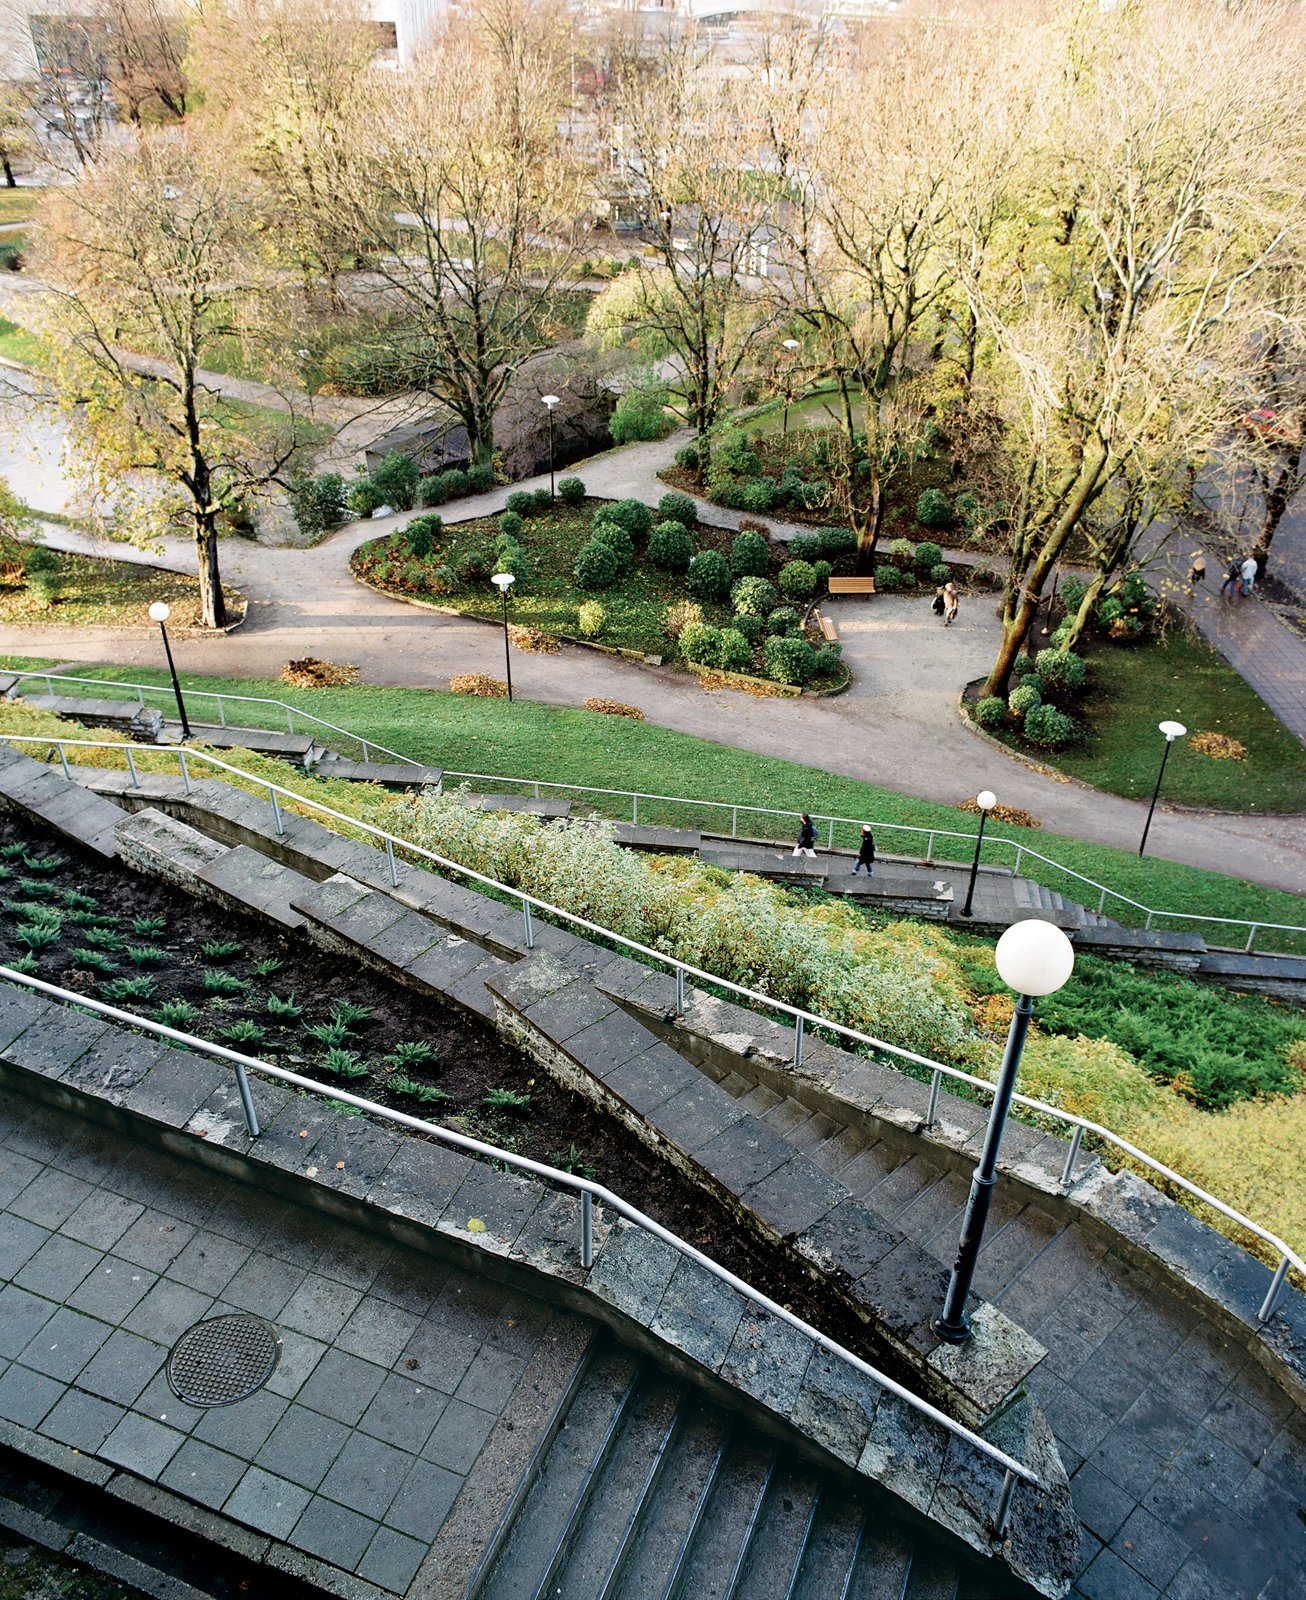 Snelli Park, one of a necklace of lawns beside the old battlements, offers year-round recreation, whether ice-skating on the moat or picnicking on the grass.  Photo 4 of 12 in 5 Reasons Why Landscaping and Bringing Plants Into Your Home Is So Valuable from Tallinn, Estonia